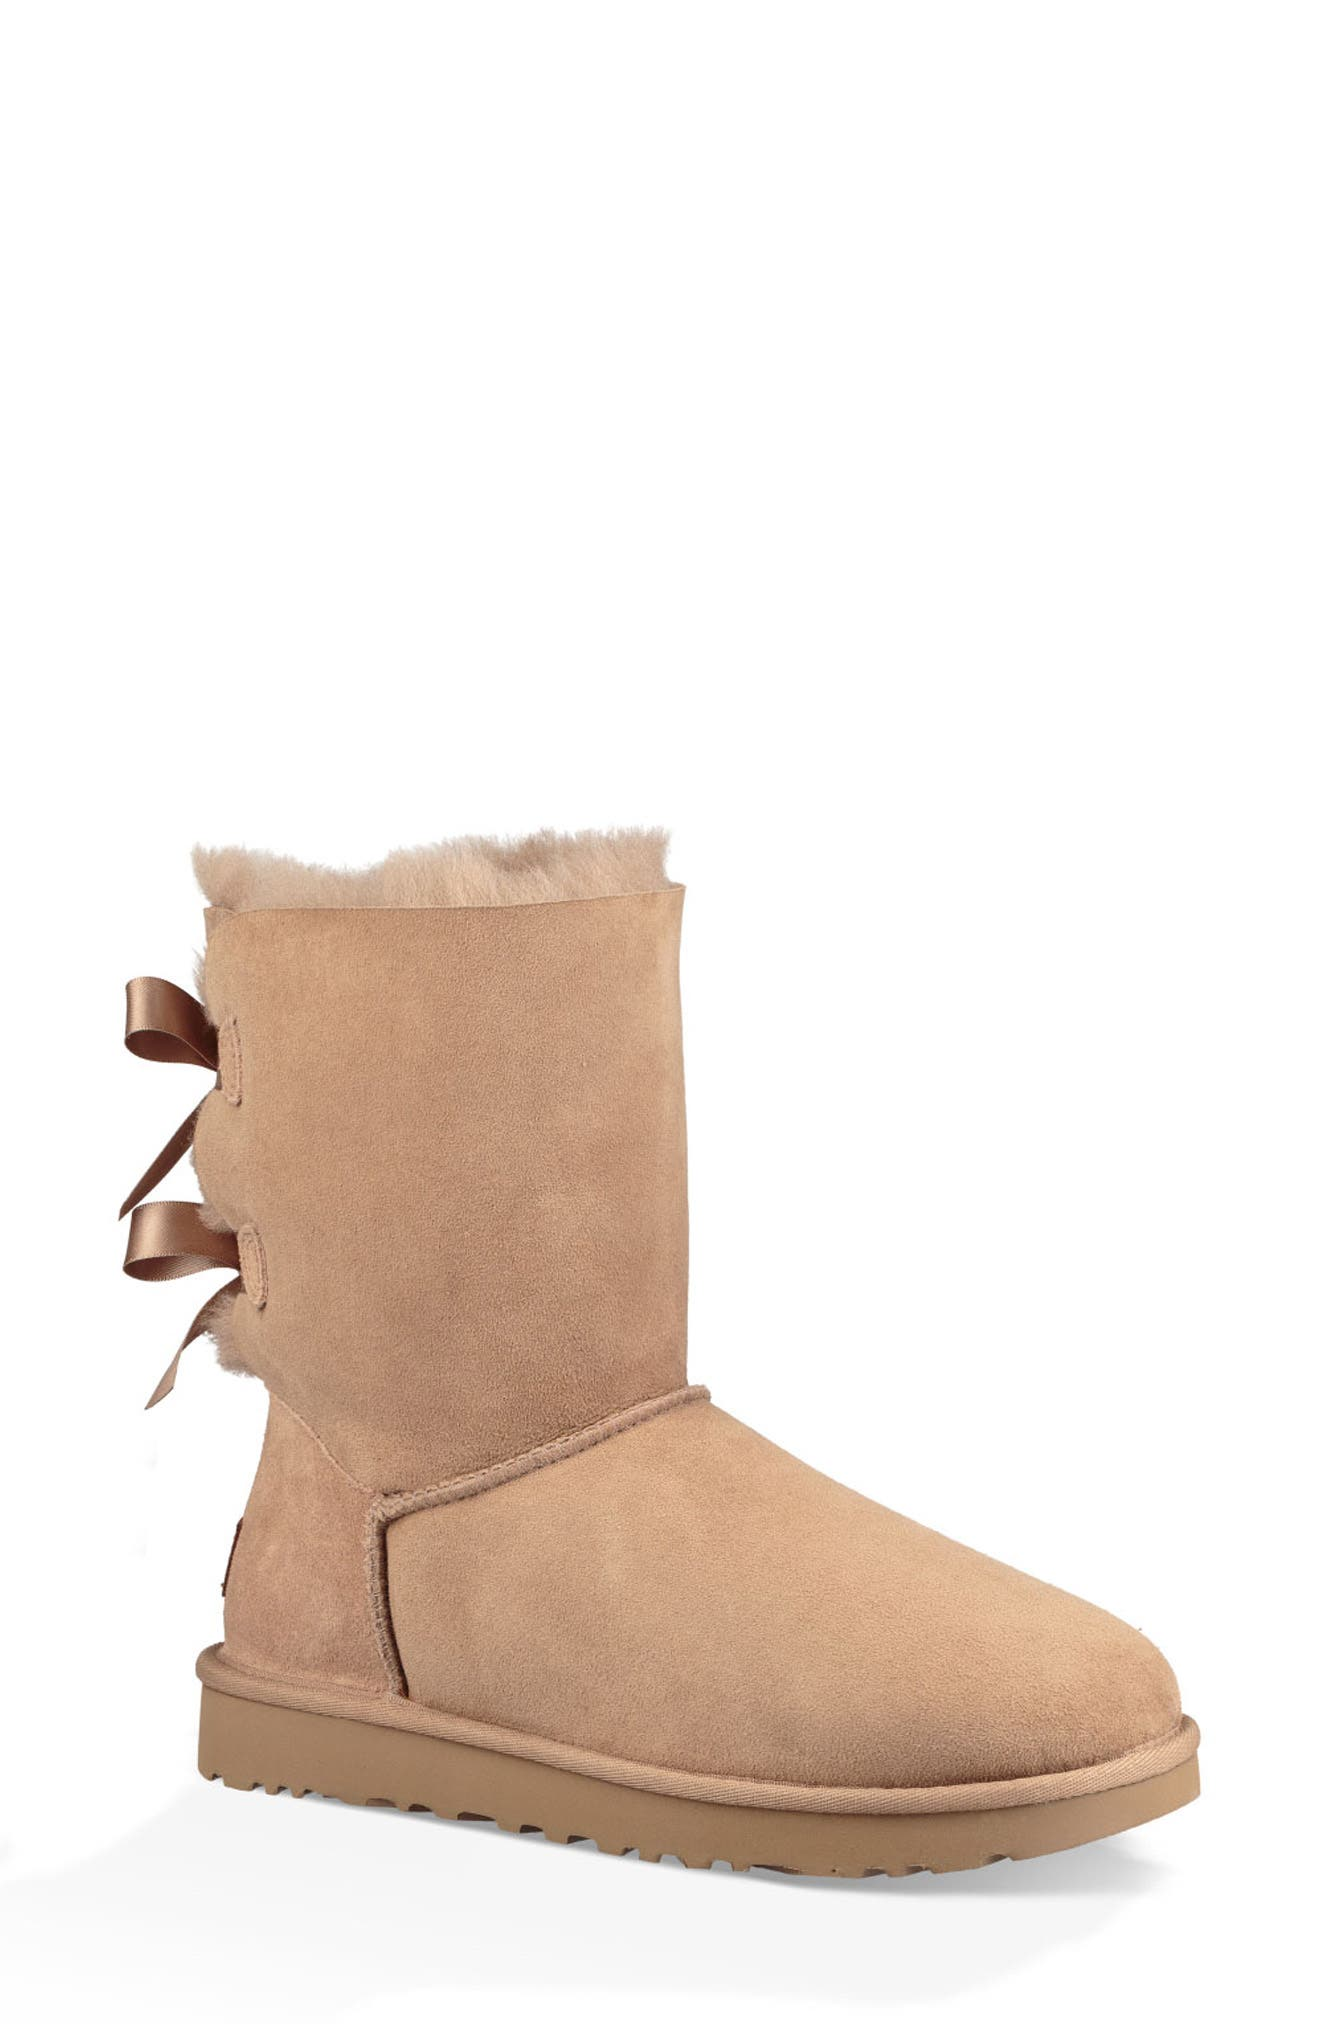 'Bailey Bow II' Boot,                         Main,                         color, FAWN